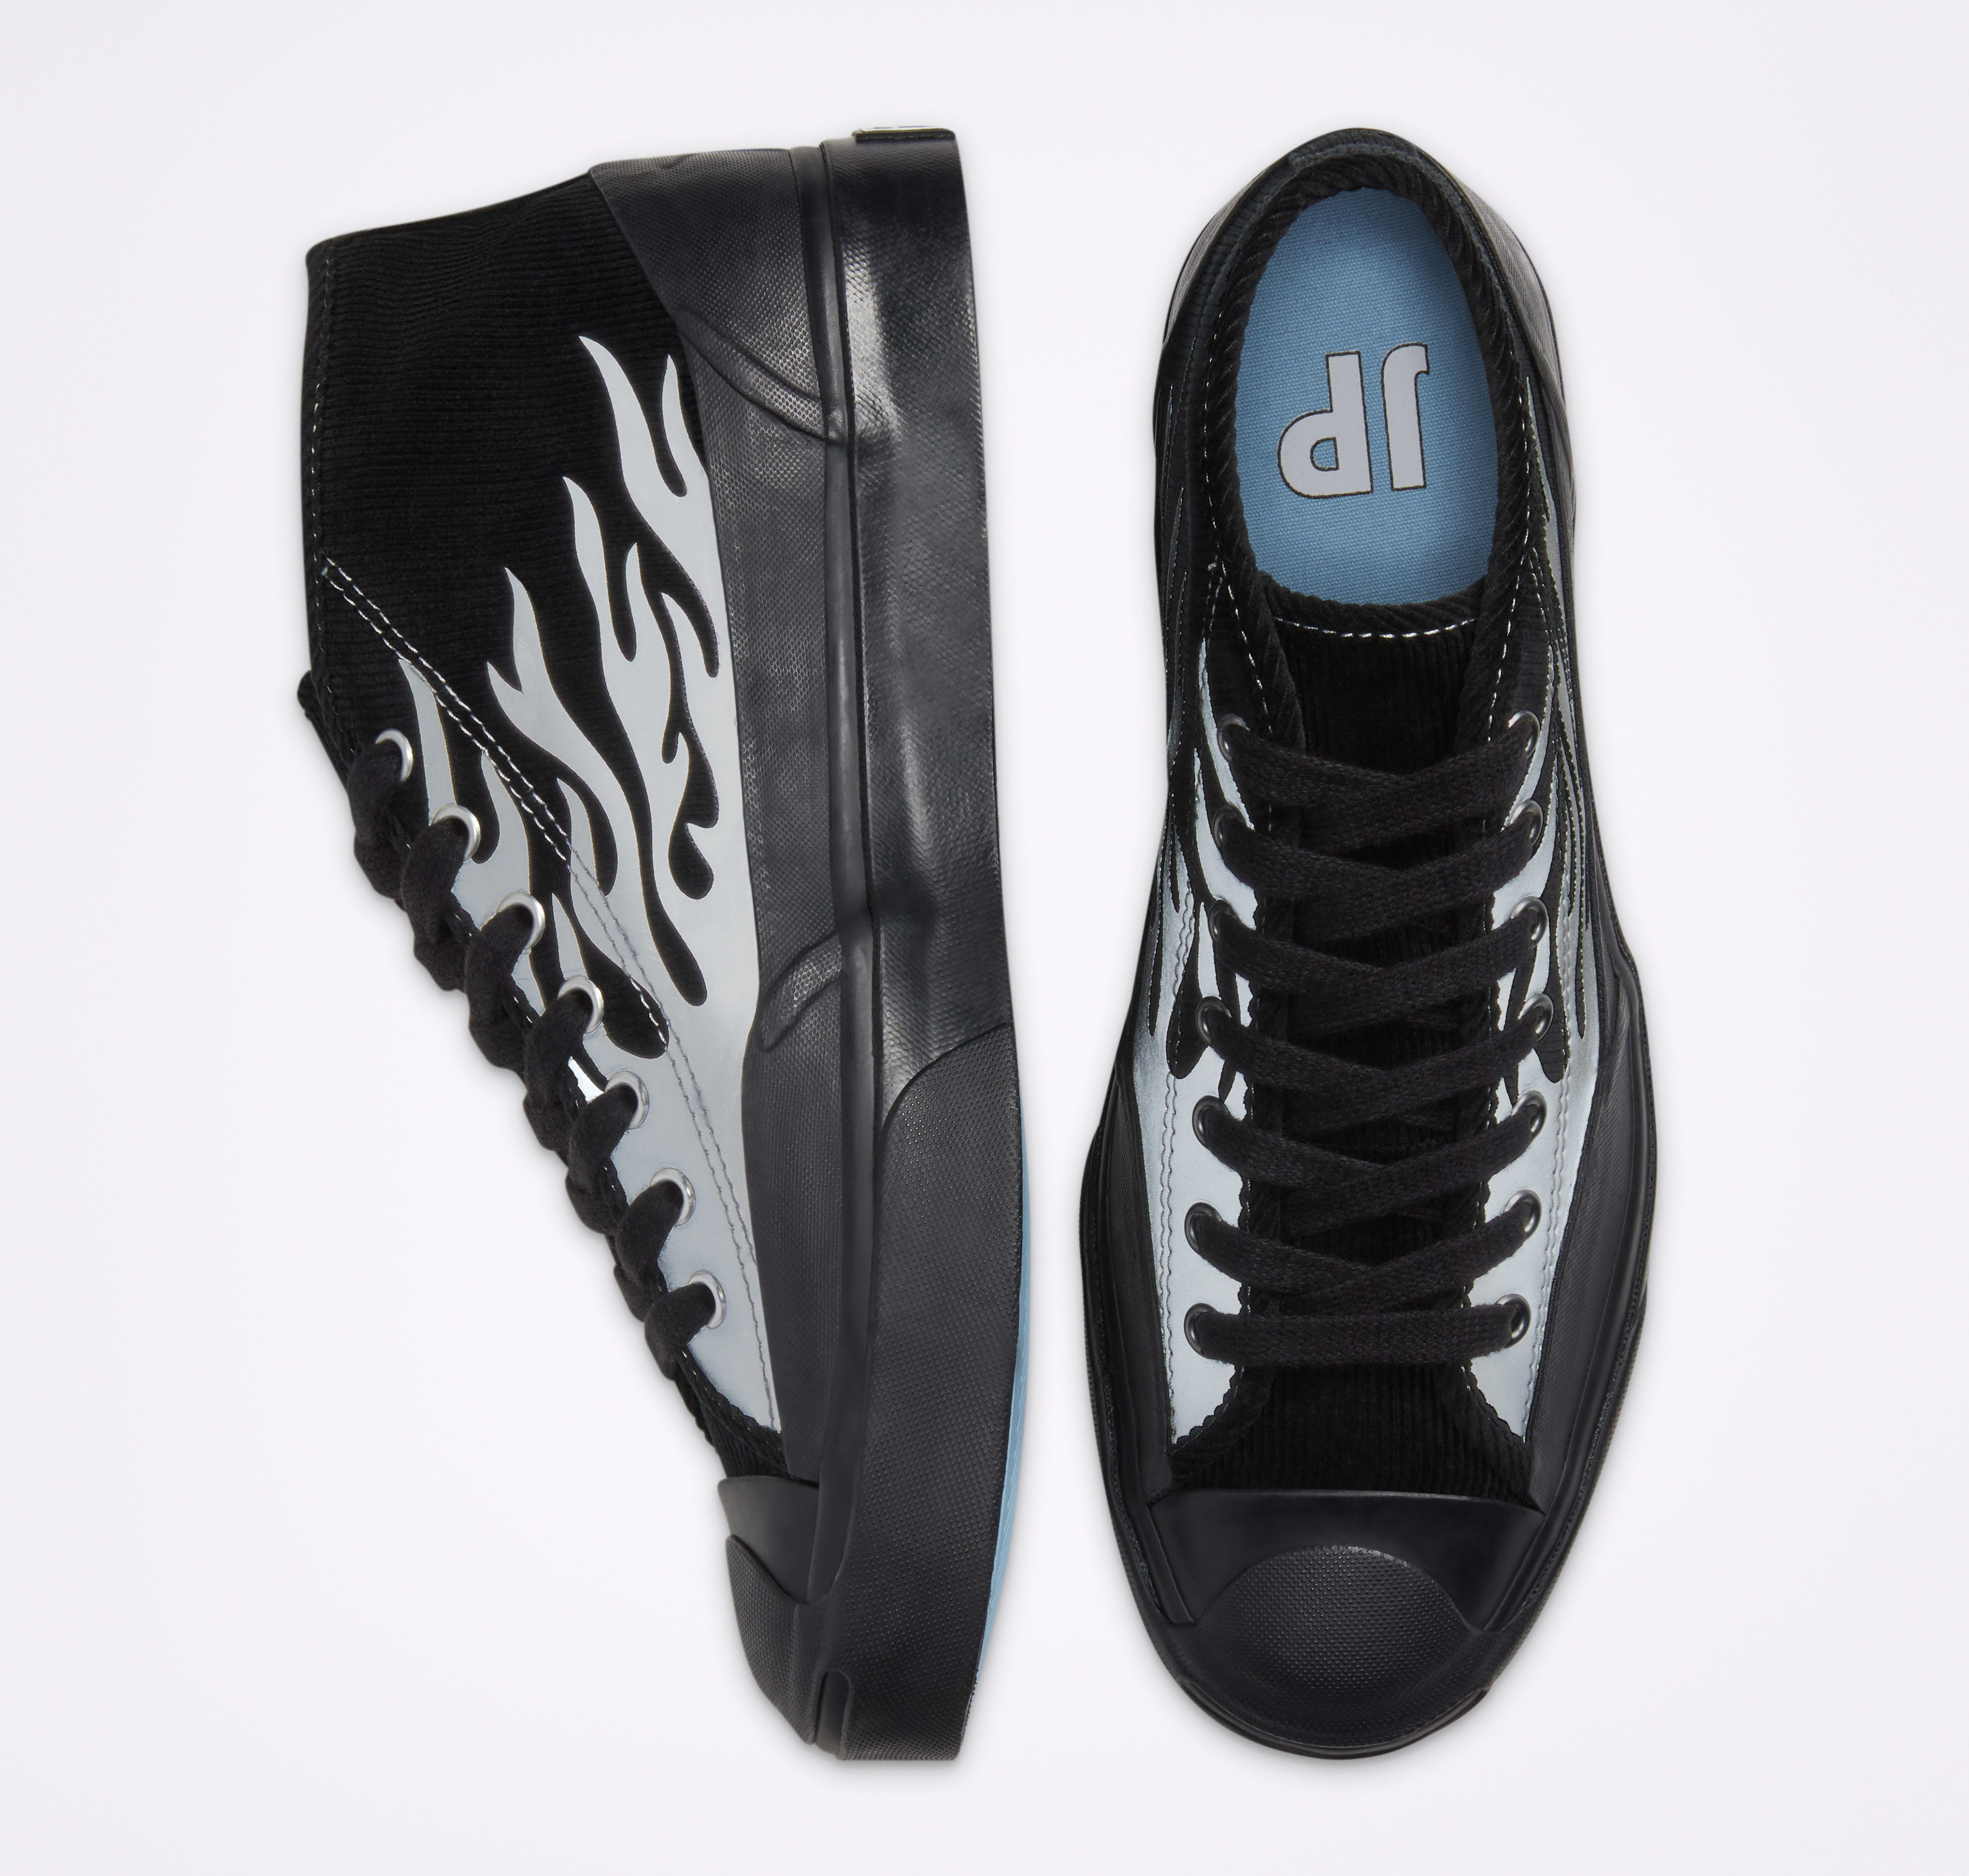 asap-nast-converse-jack-purcell-mid-black-167379c-pair